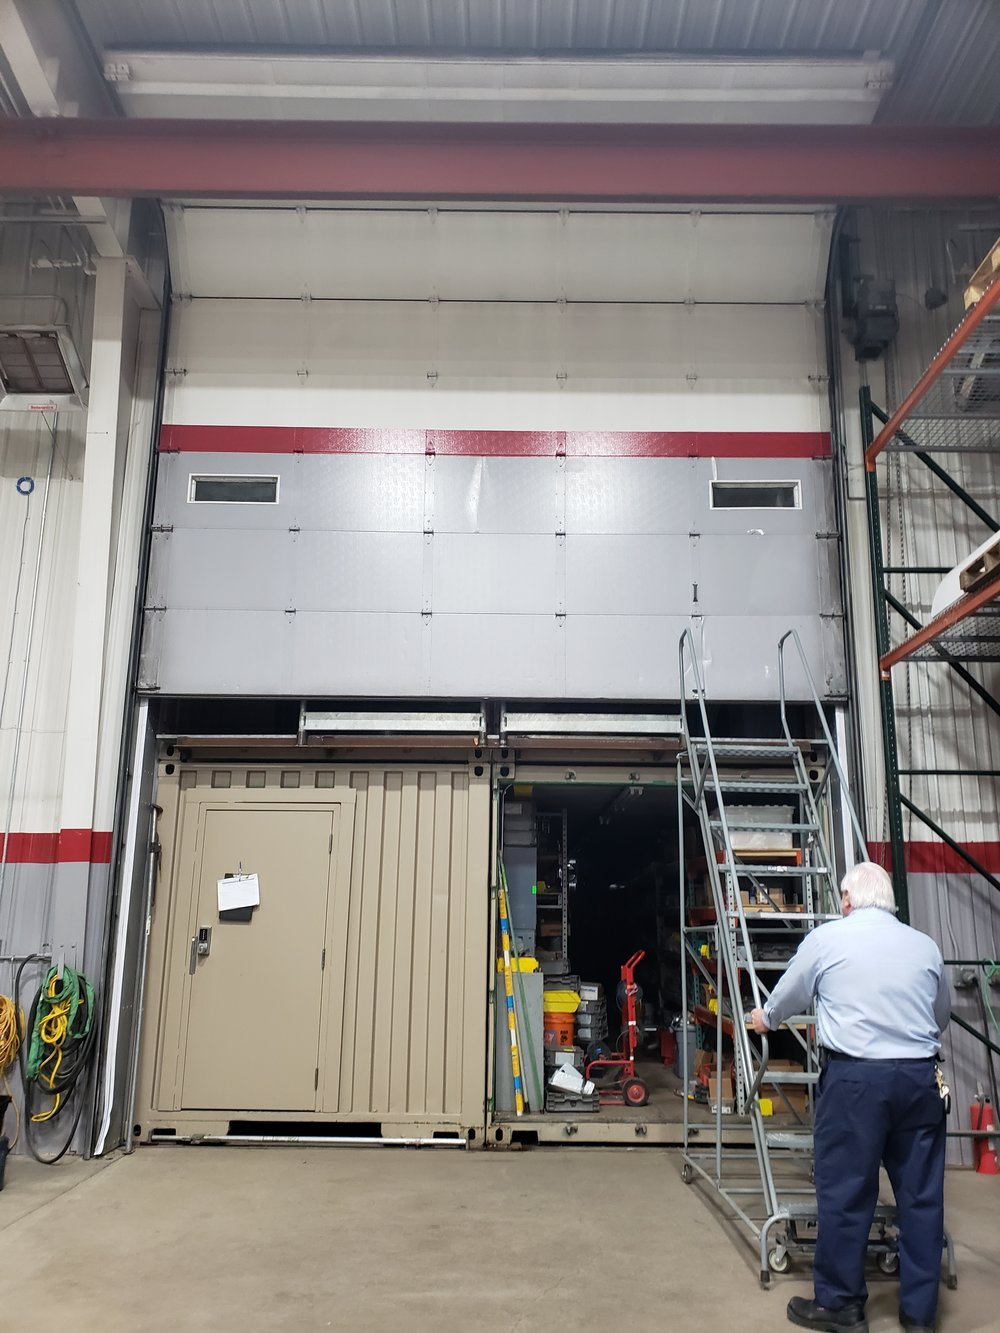 A 16' overhead door opens to reveal 4 containers